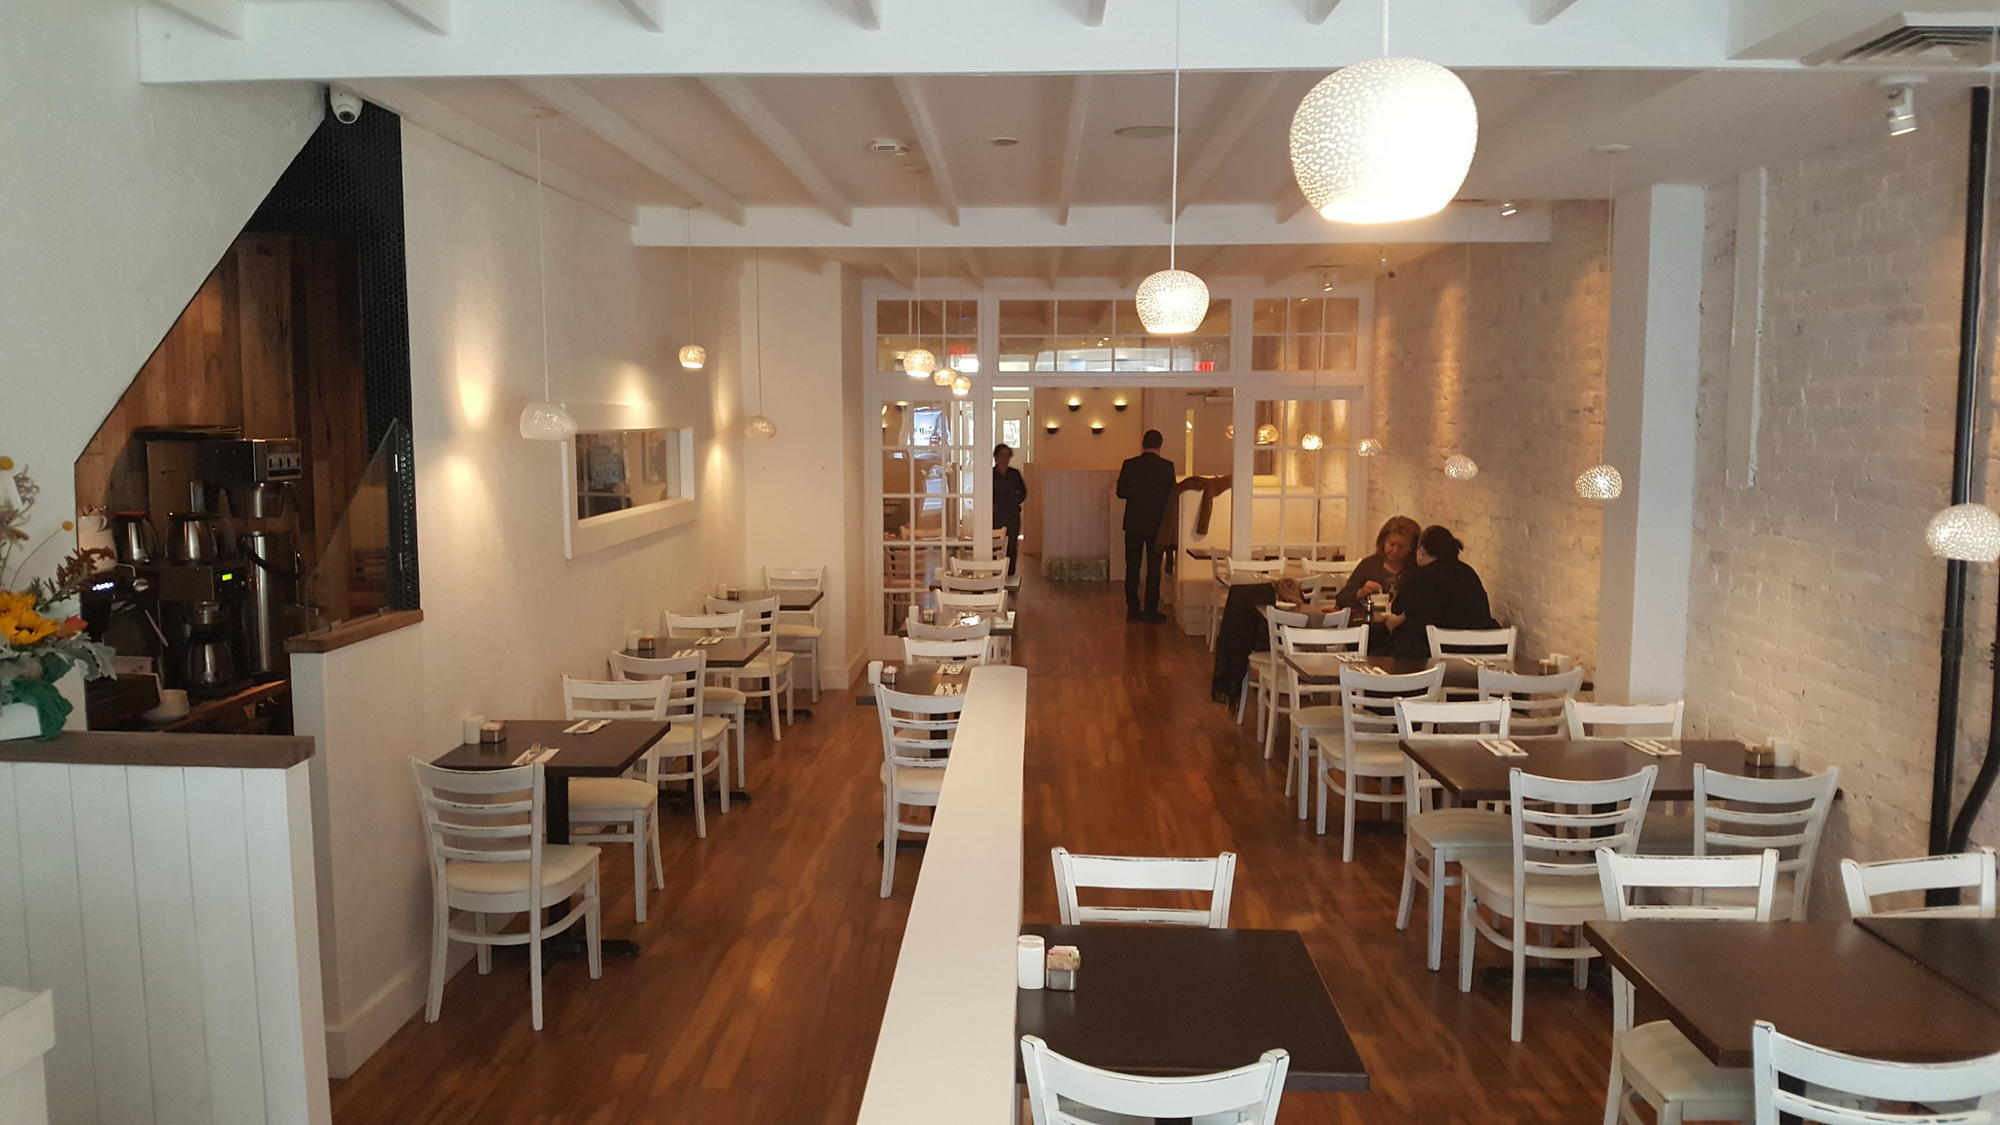 tapas team opens third restaurant a breakfast and lunch spot on bethlehem 39 s main street the. Black Bedroom Furniture Sets. Home Design Ideas